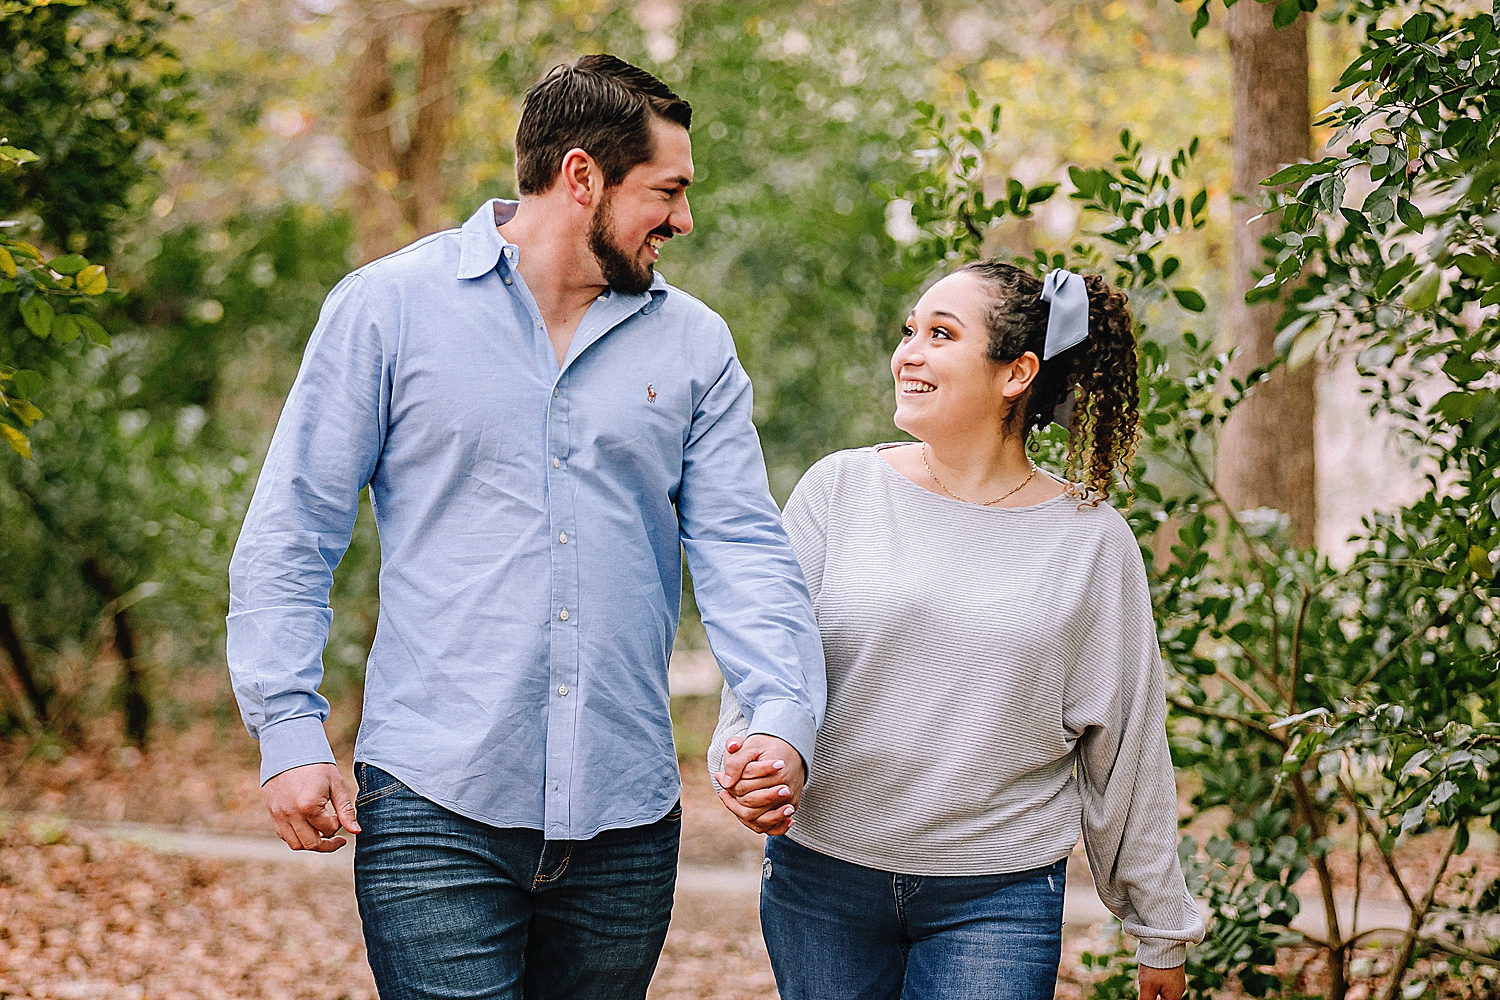 Engagement-photo-session-gruene-new-braunfels-texas-carly-barton-photography_0017.jpg